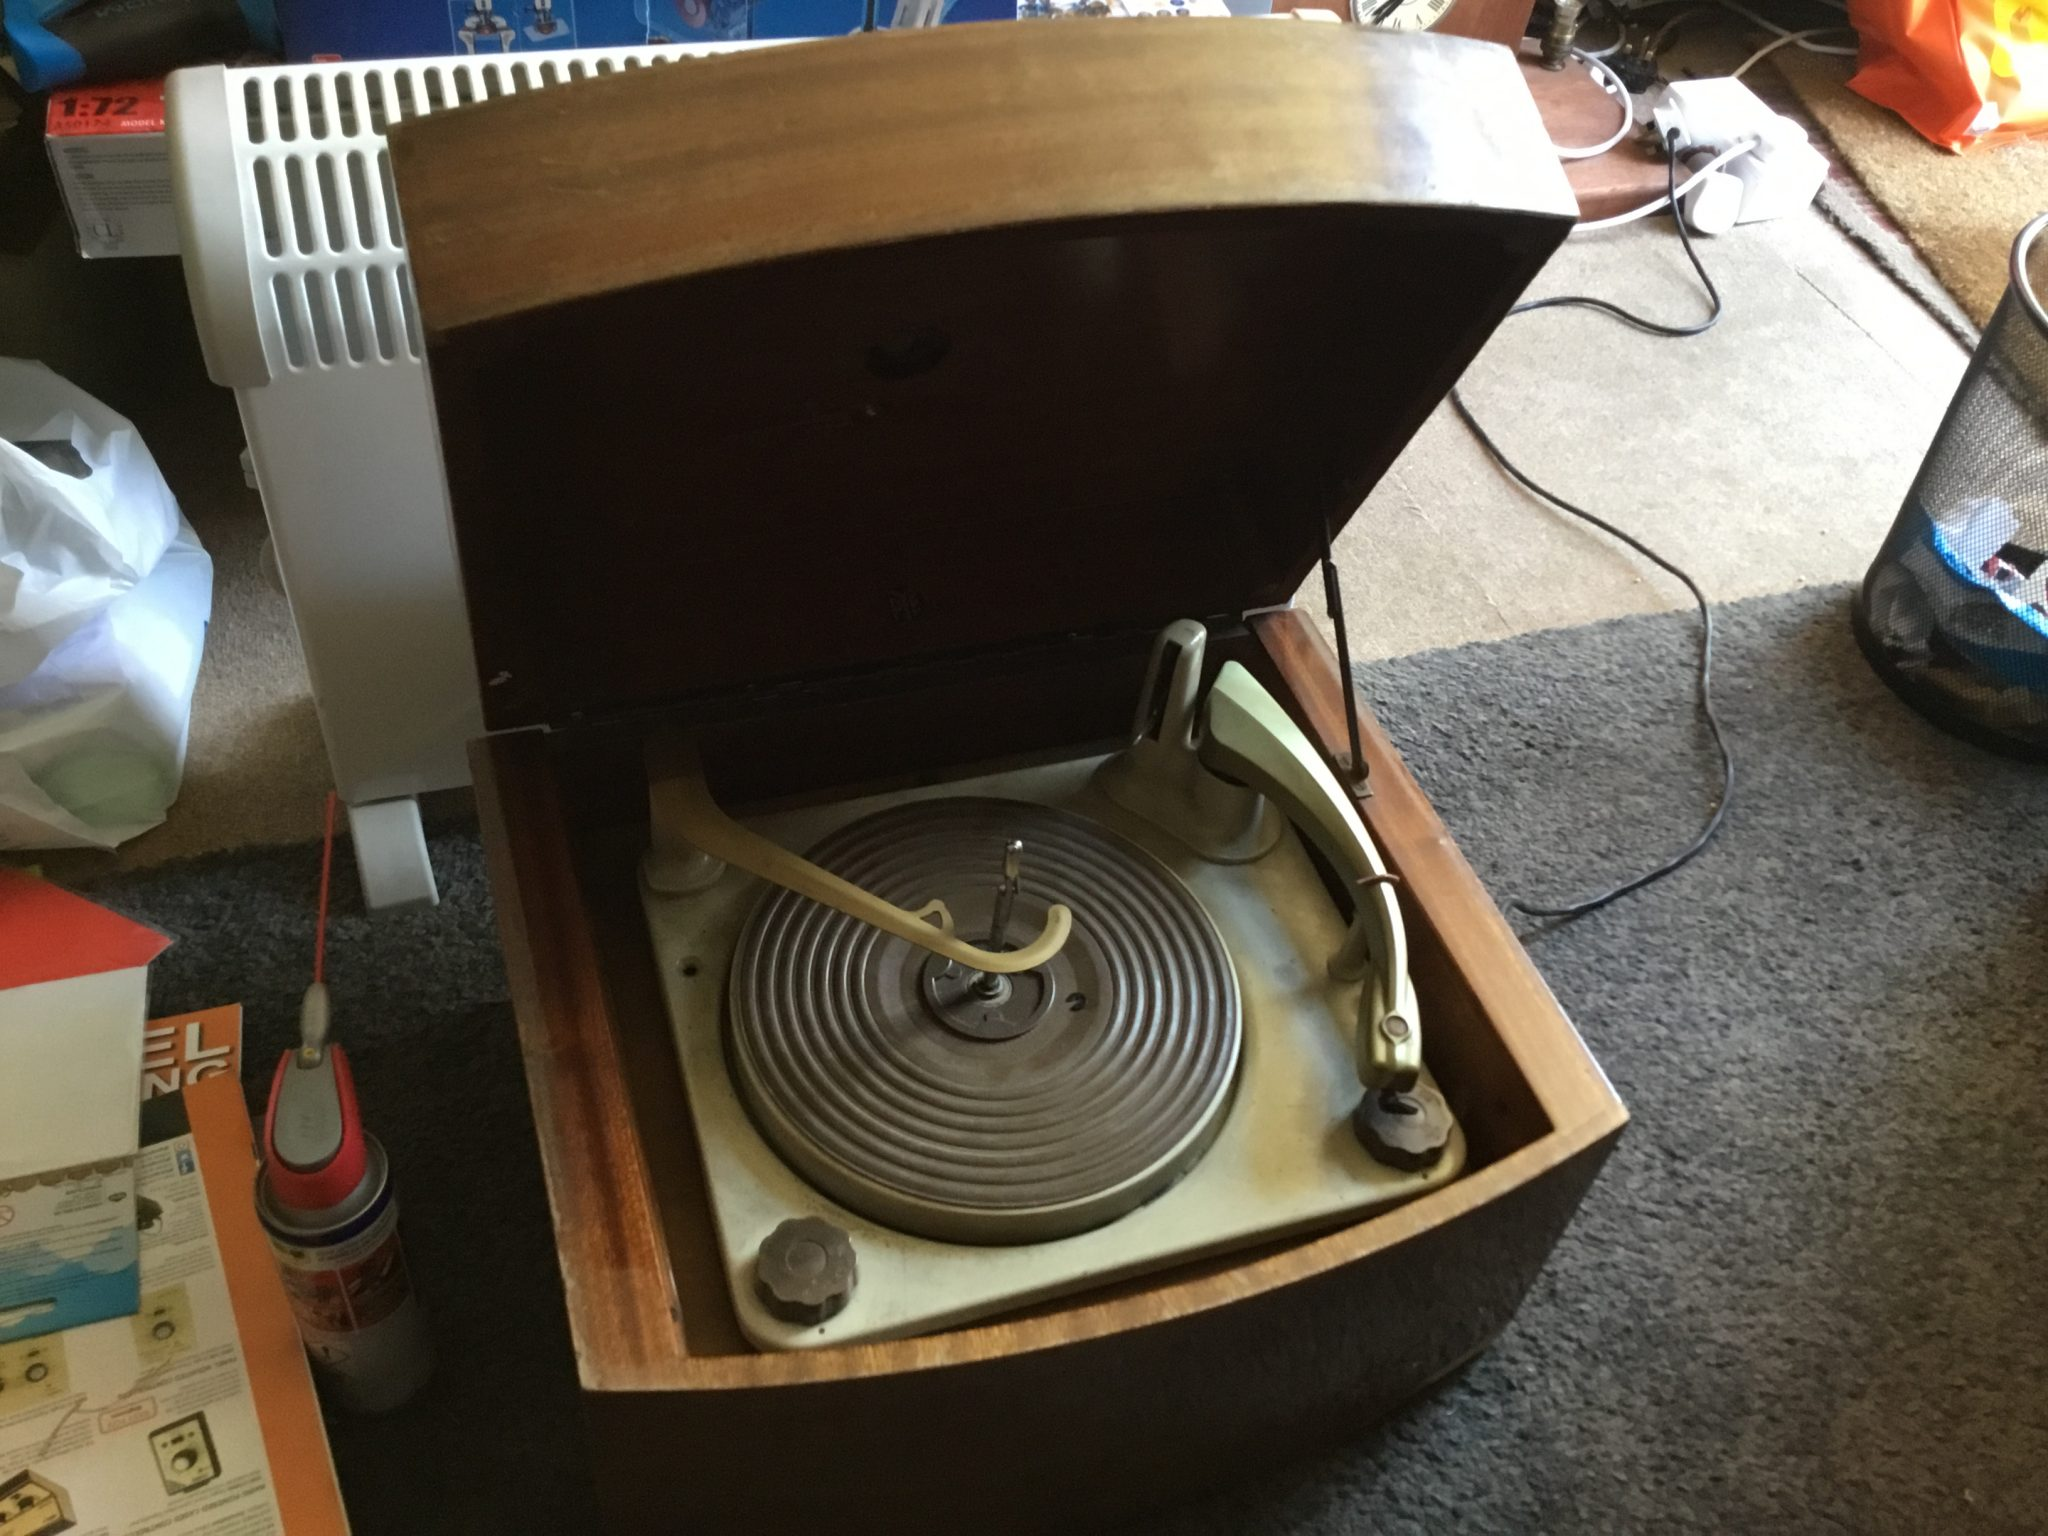 A vintage Pye Black Box record player bought for three pounds on Barnsley Market.